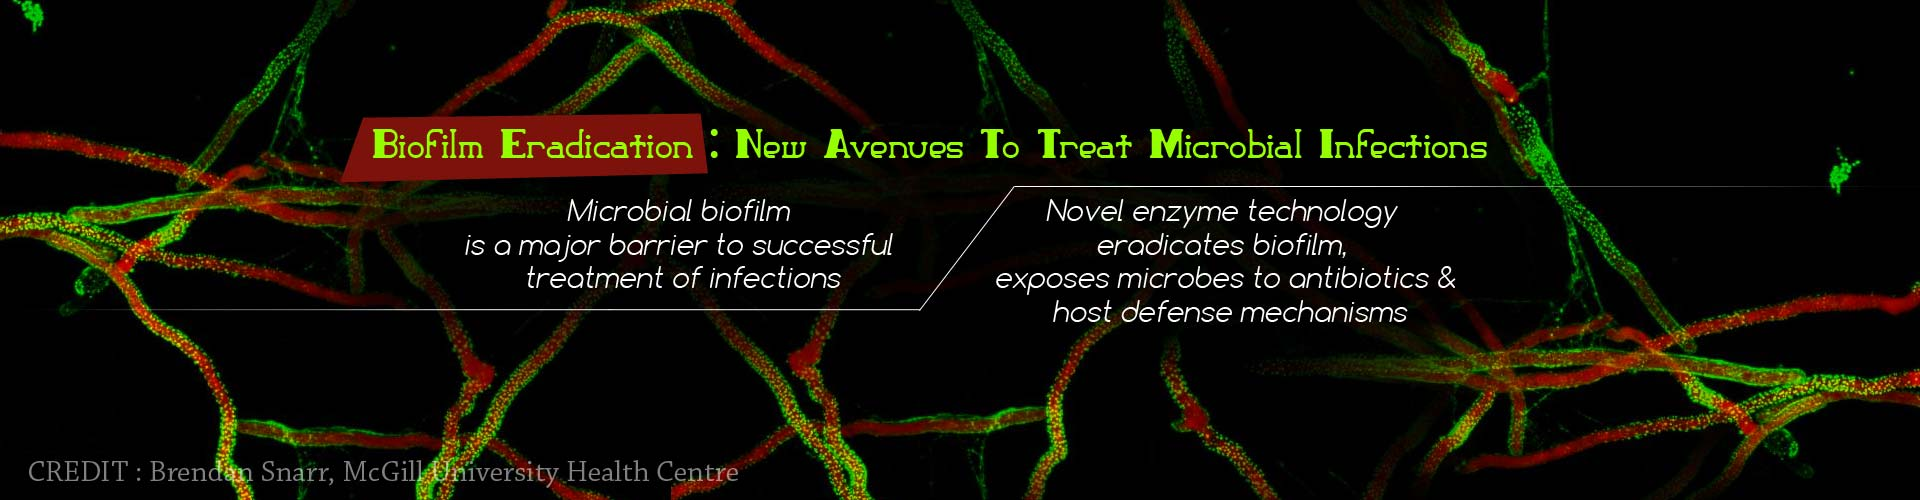 Biofilm Eradication: New avenues to treat microbial infections - Microbial biofilm is a major barrier to successful treatment of infections - Novel enzyme technology eradicated biofilm, exposes microbes to antibiotics & host defense mechanisms